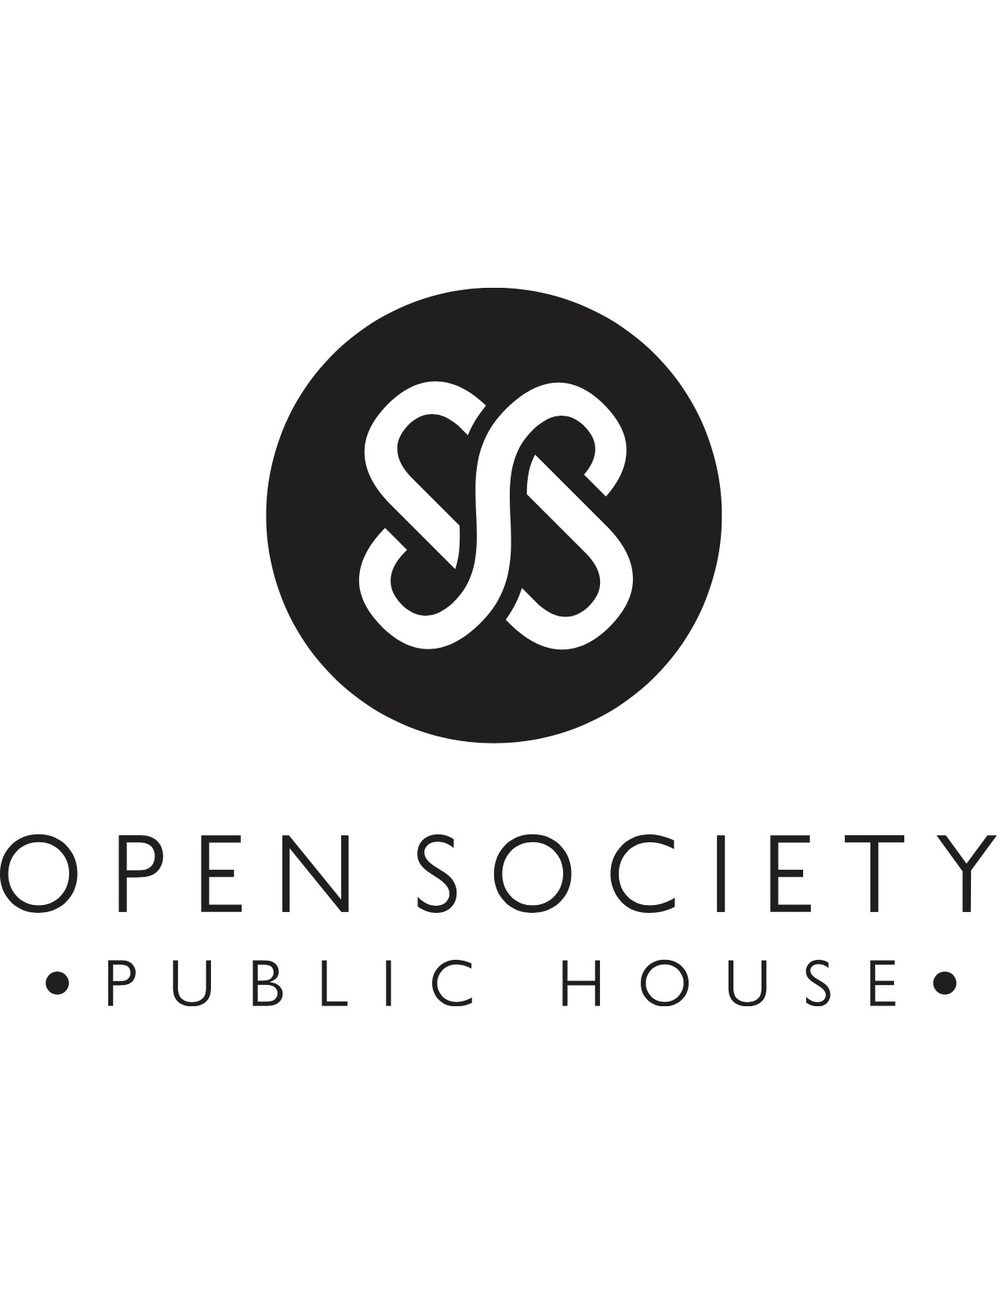 Open Society Public House